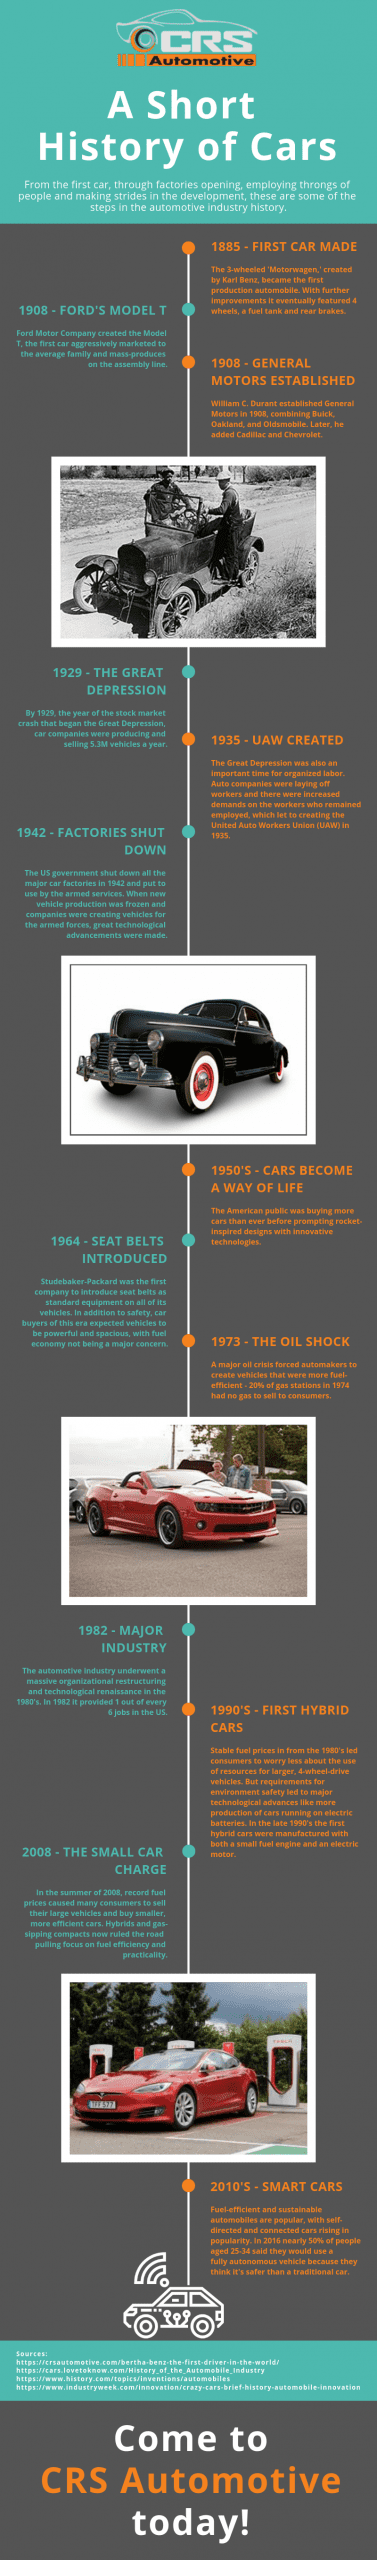 A Short History of Cars Infographic